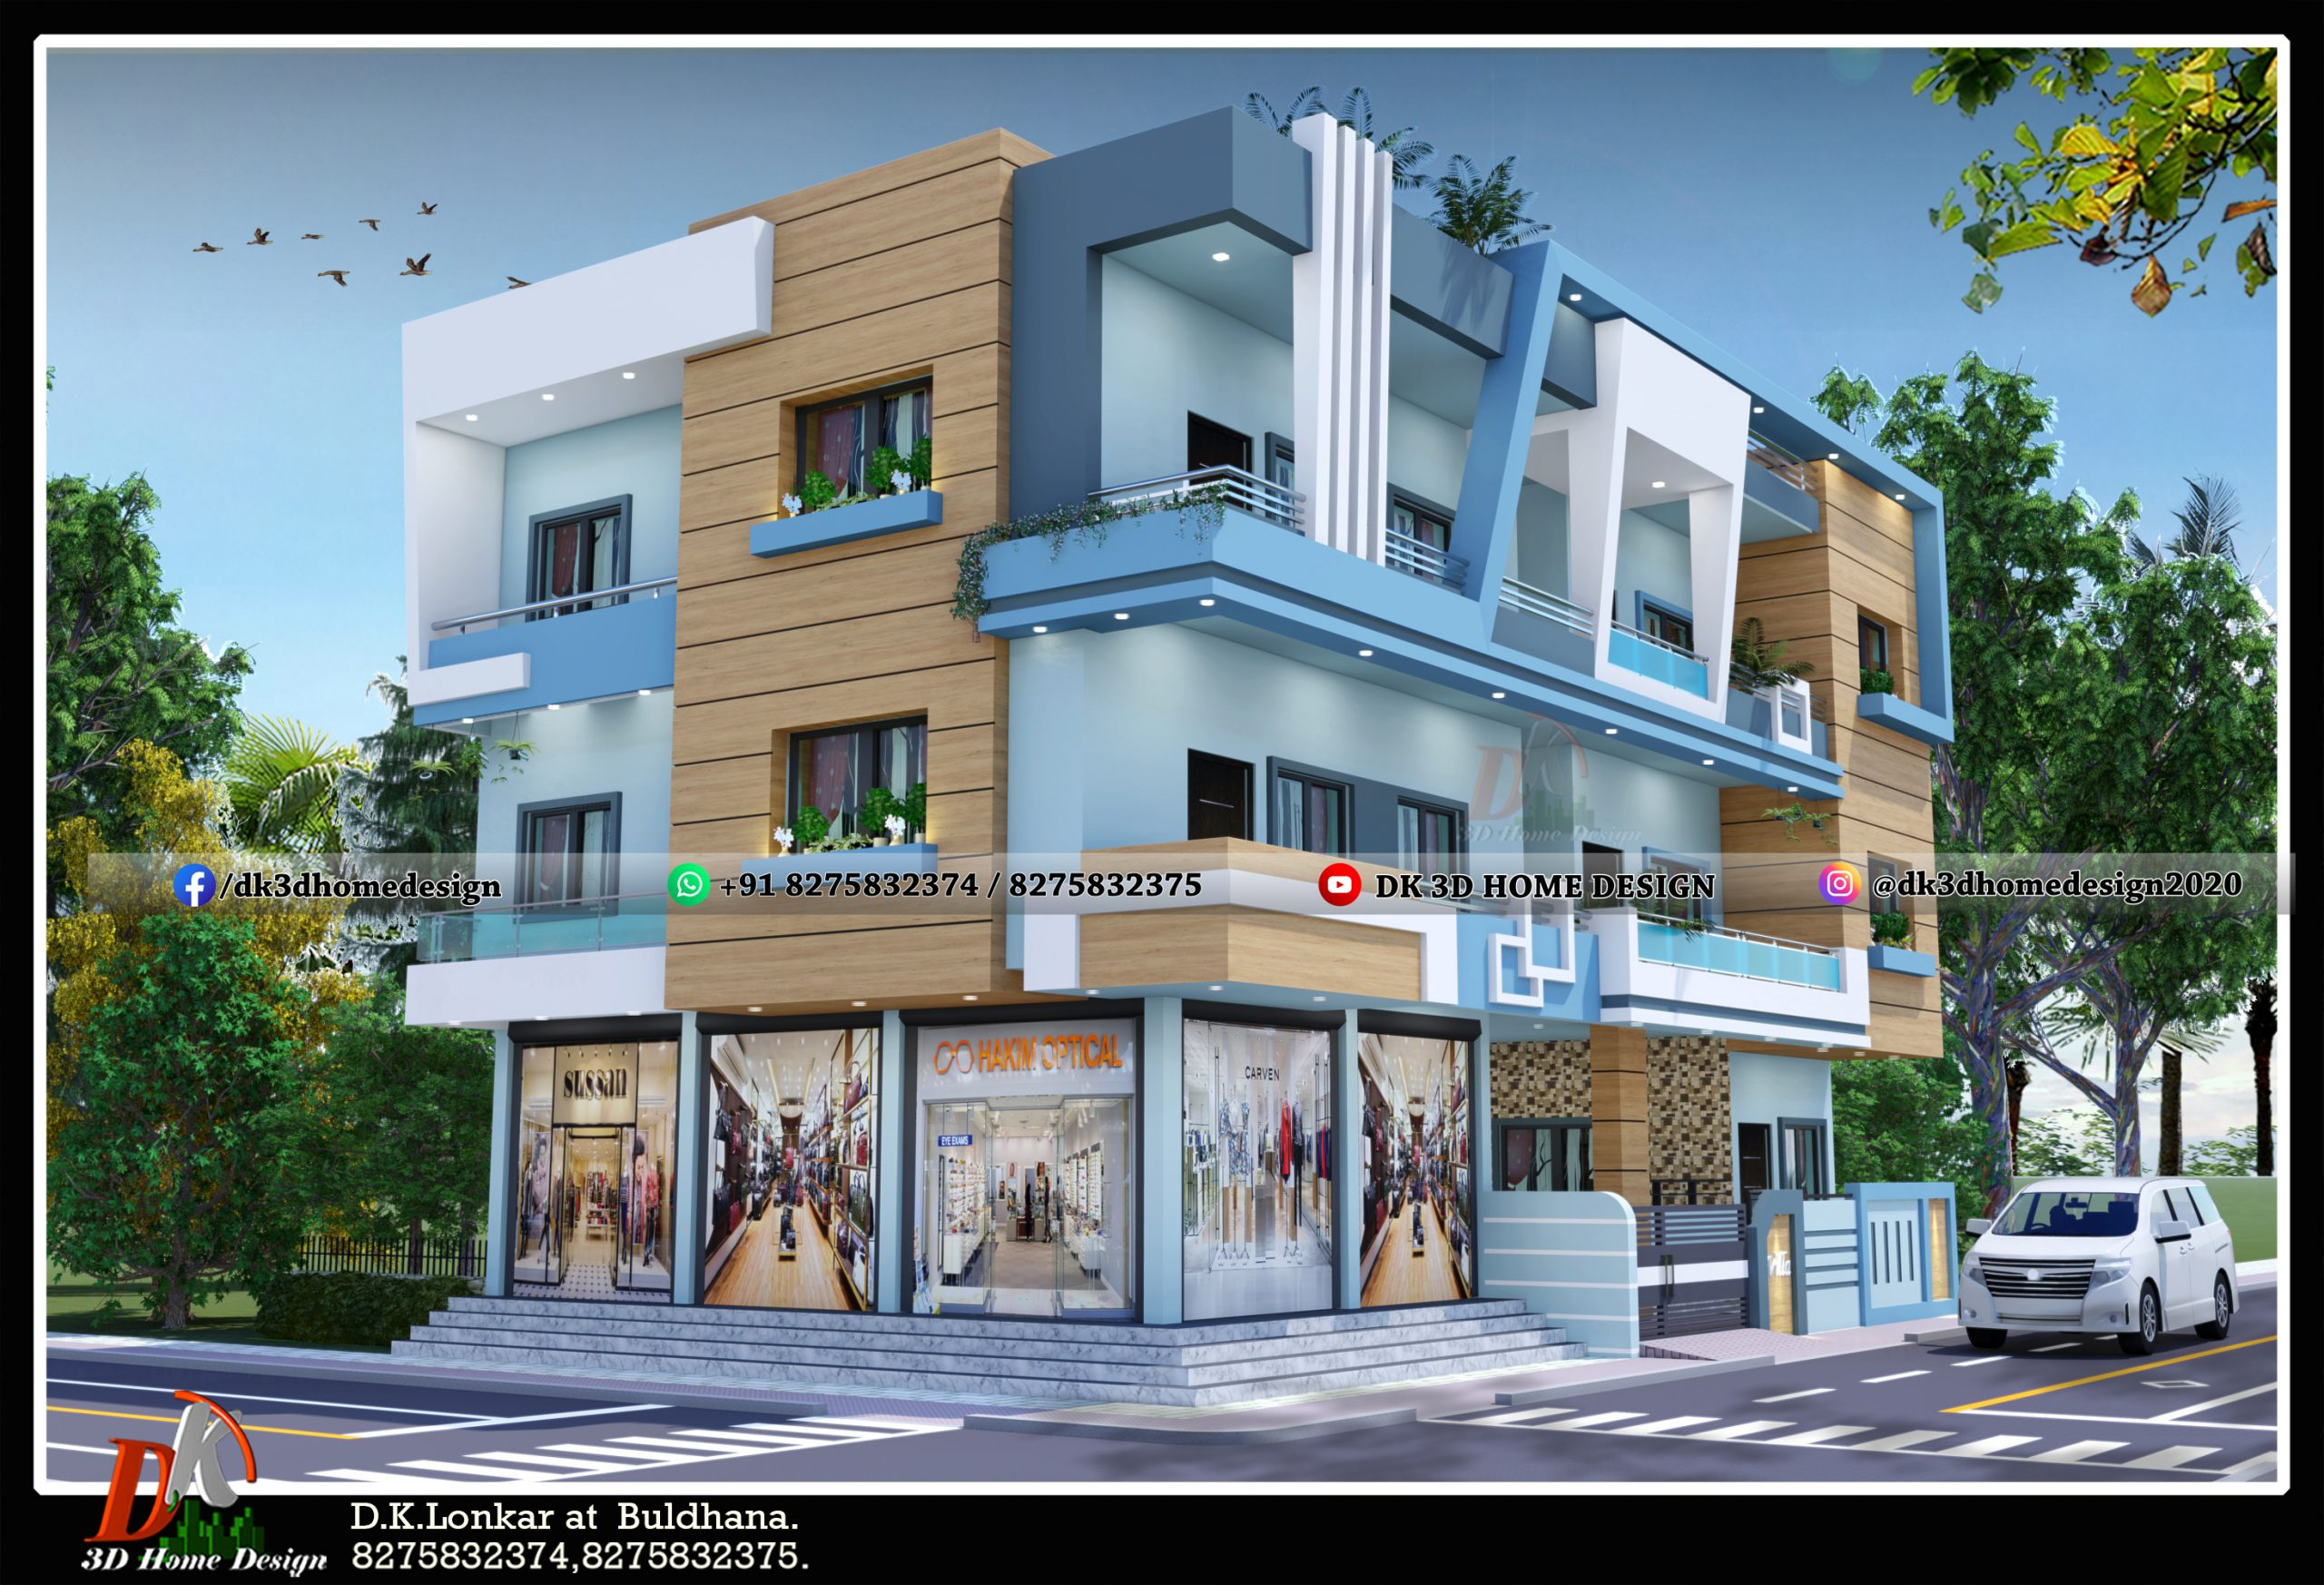 commercial and residential 3 floor building design